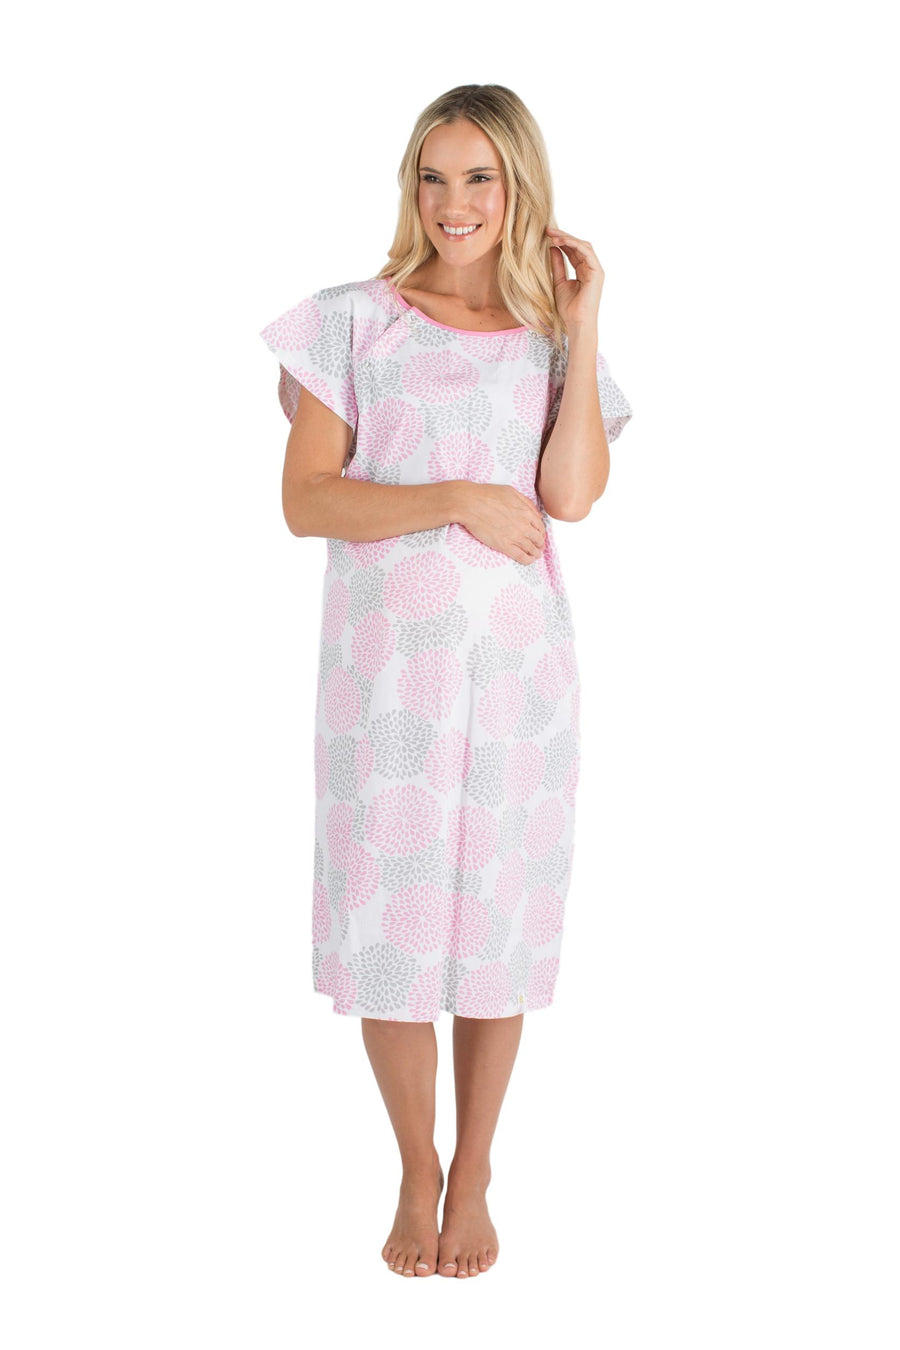 Lilly Gownies: Designer Hospital Maternity Gowns Pink Grey Floral ...